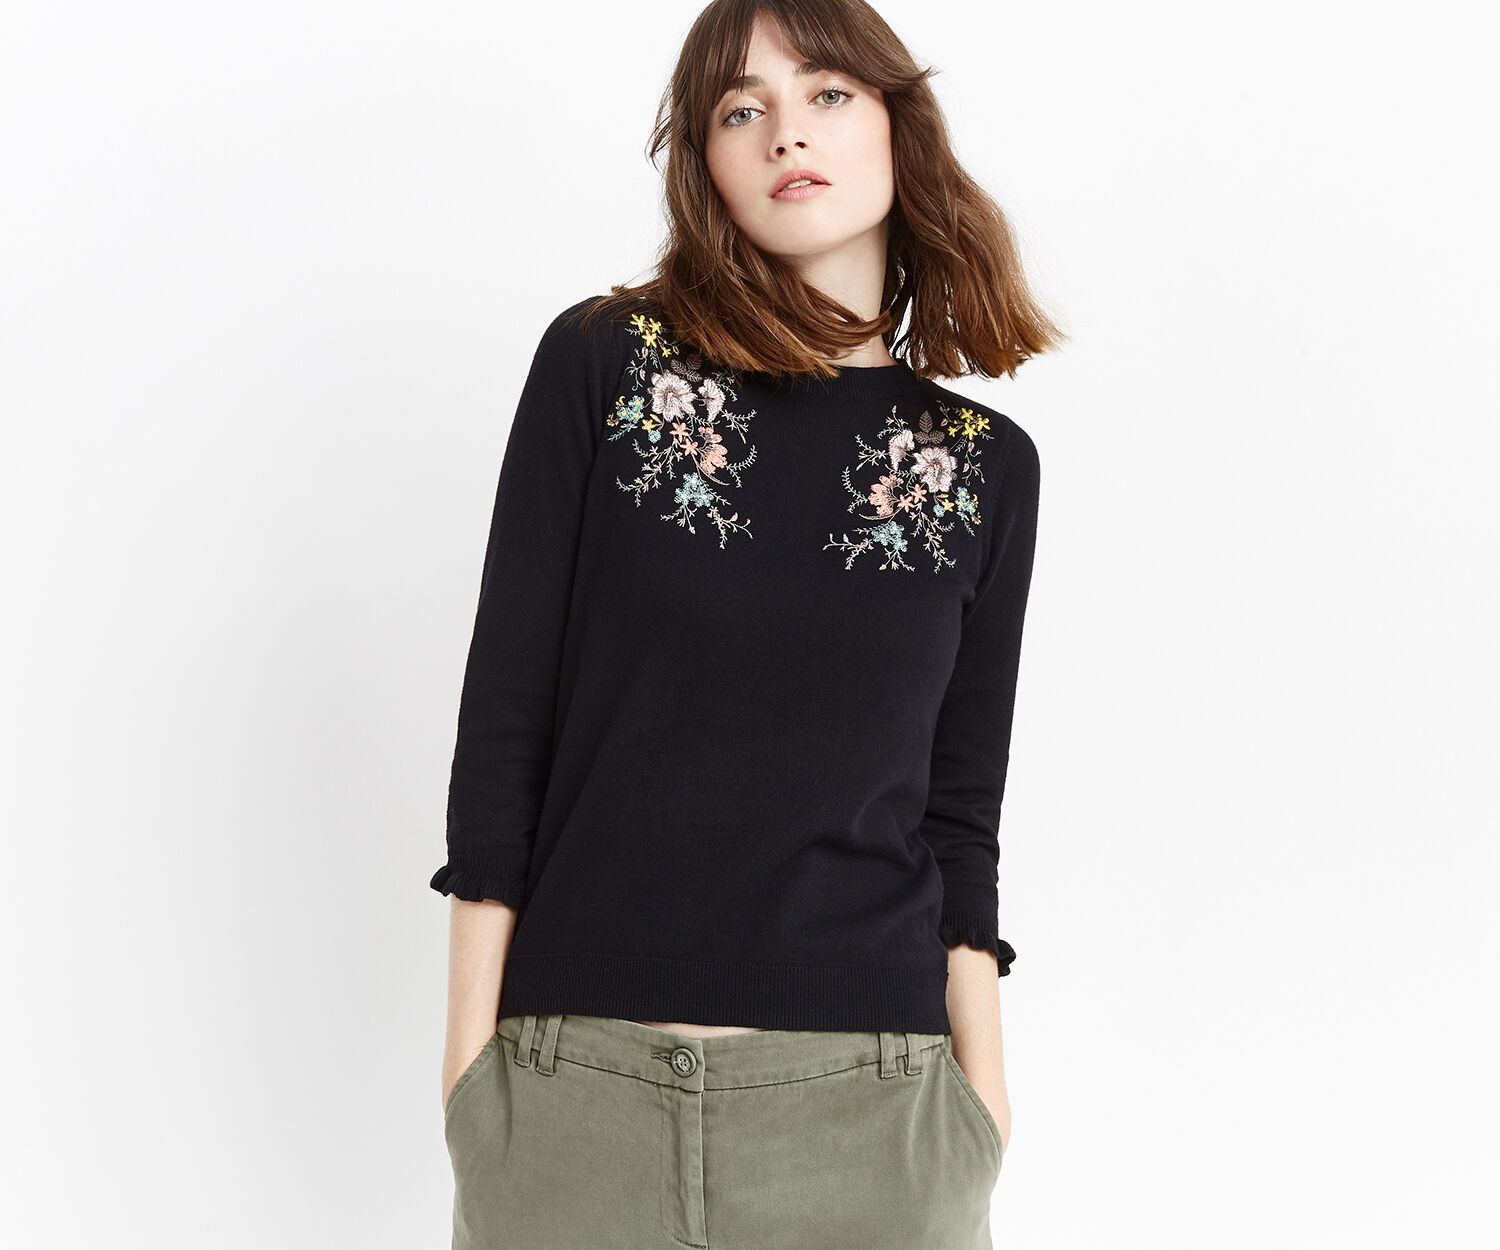 Oasis, Shipwrecked embroidered knit Black 1